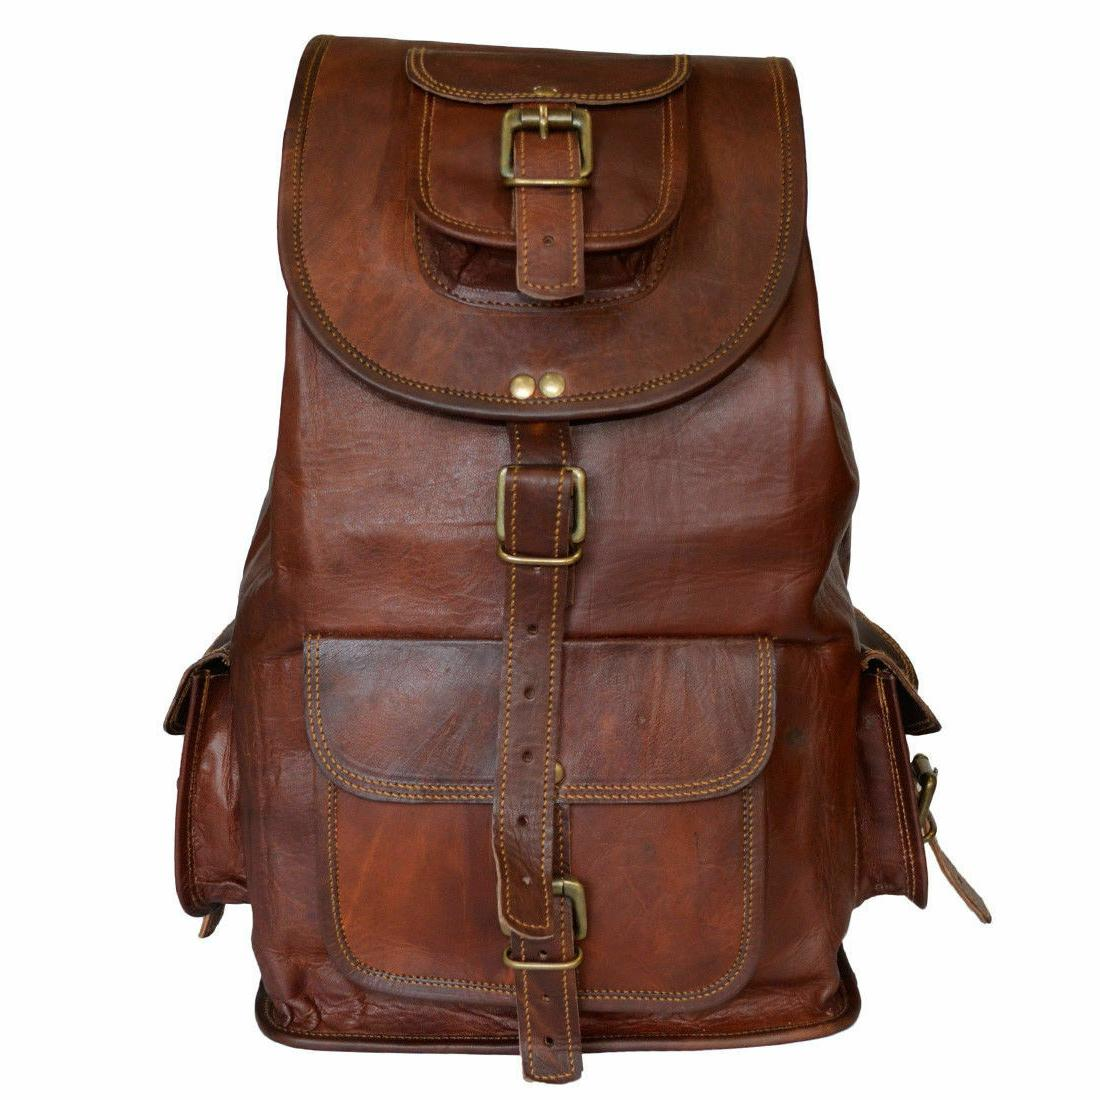 Genuine Leather Handmade Casual Bag